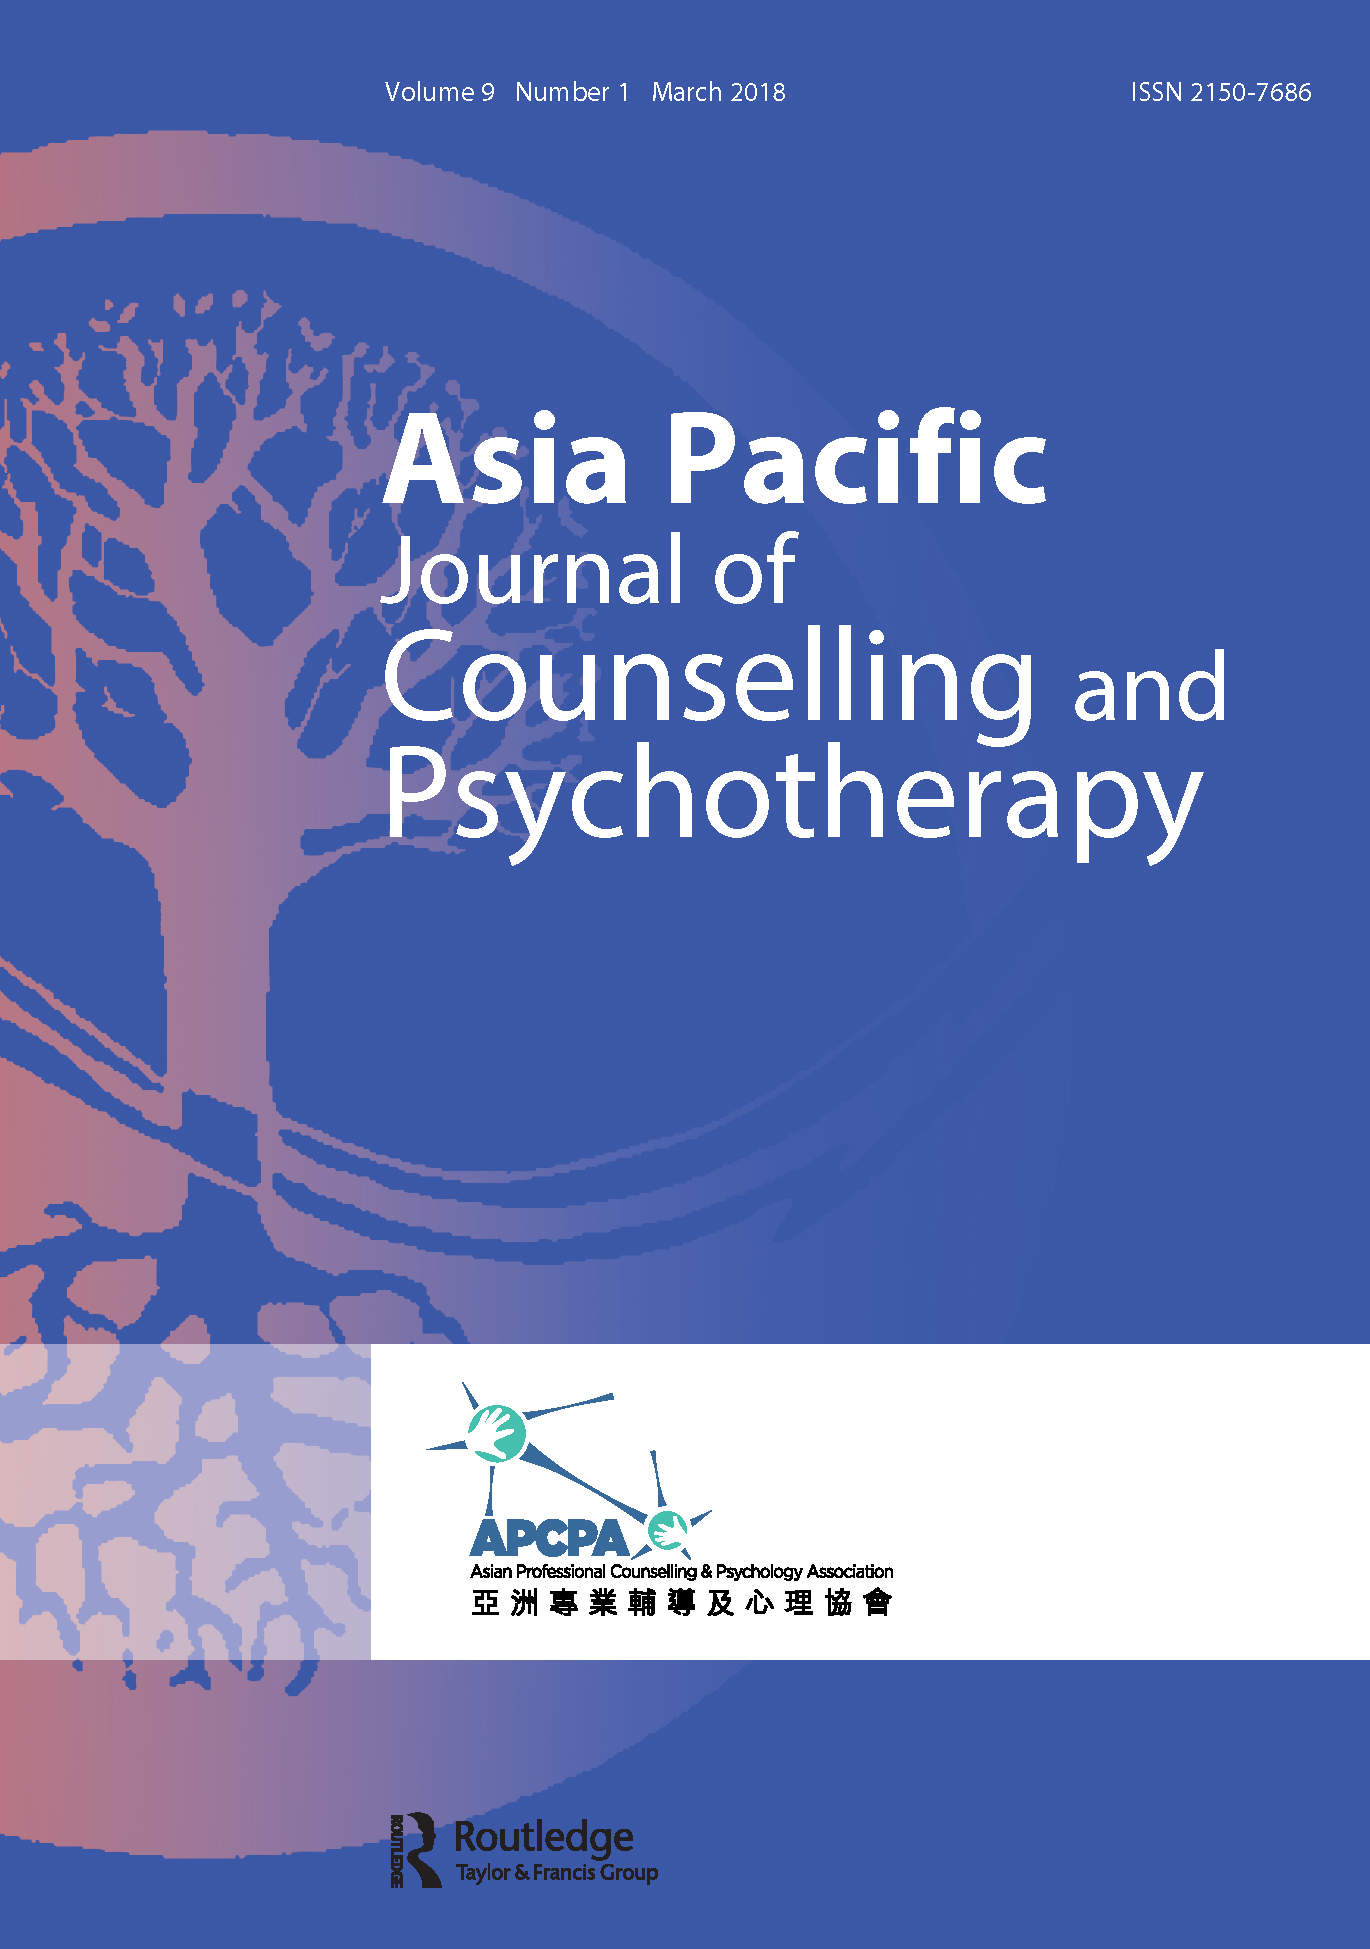 Asia Pacific Journal of Counselling and Psychotherapy